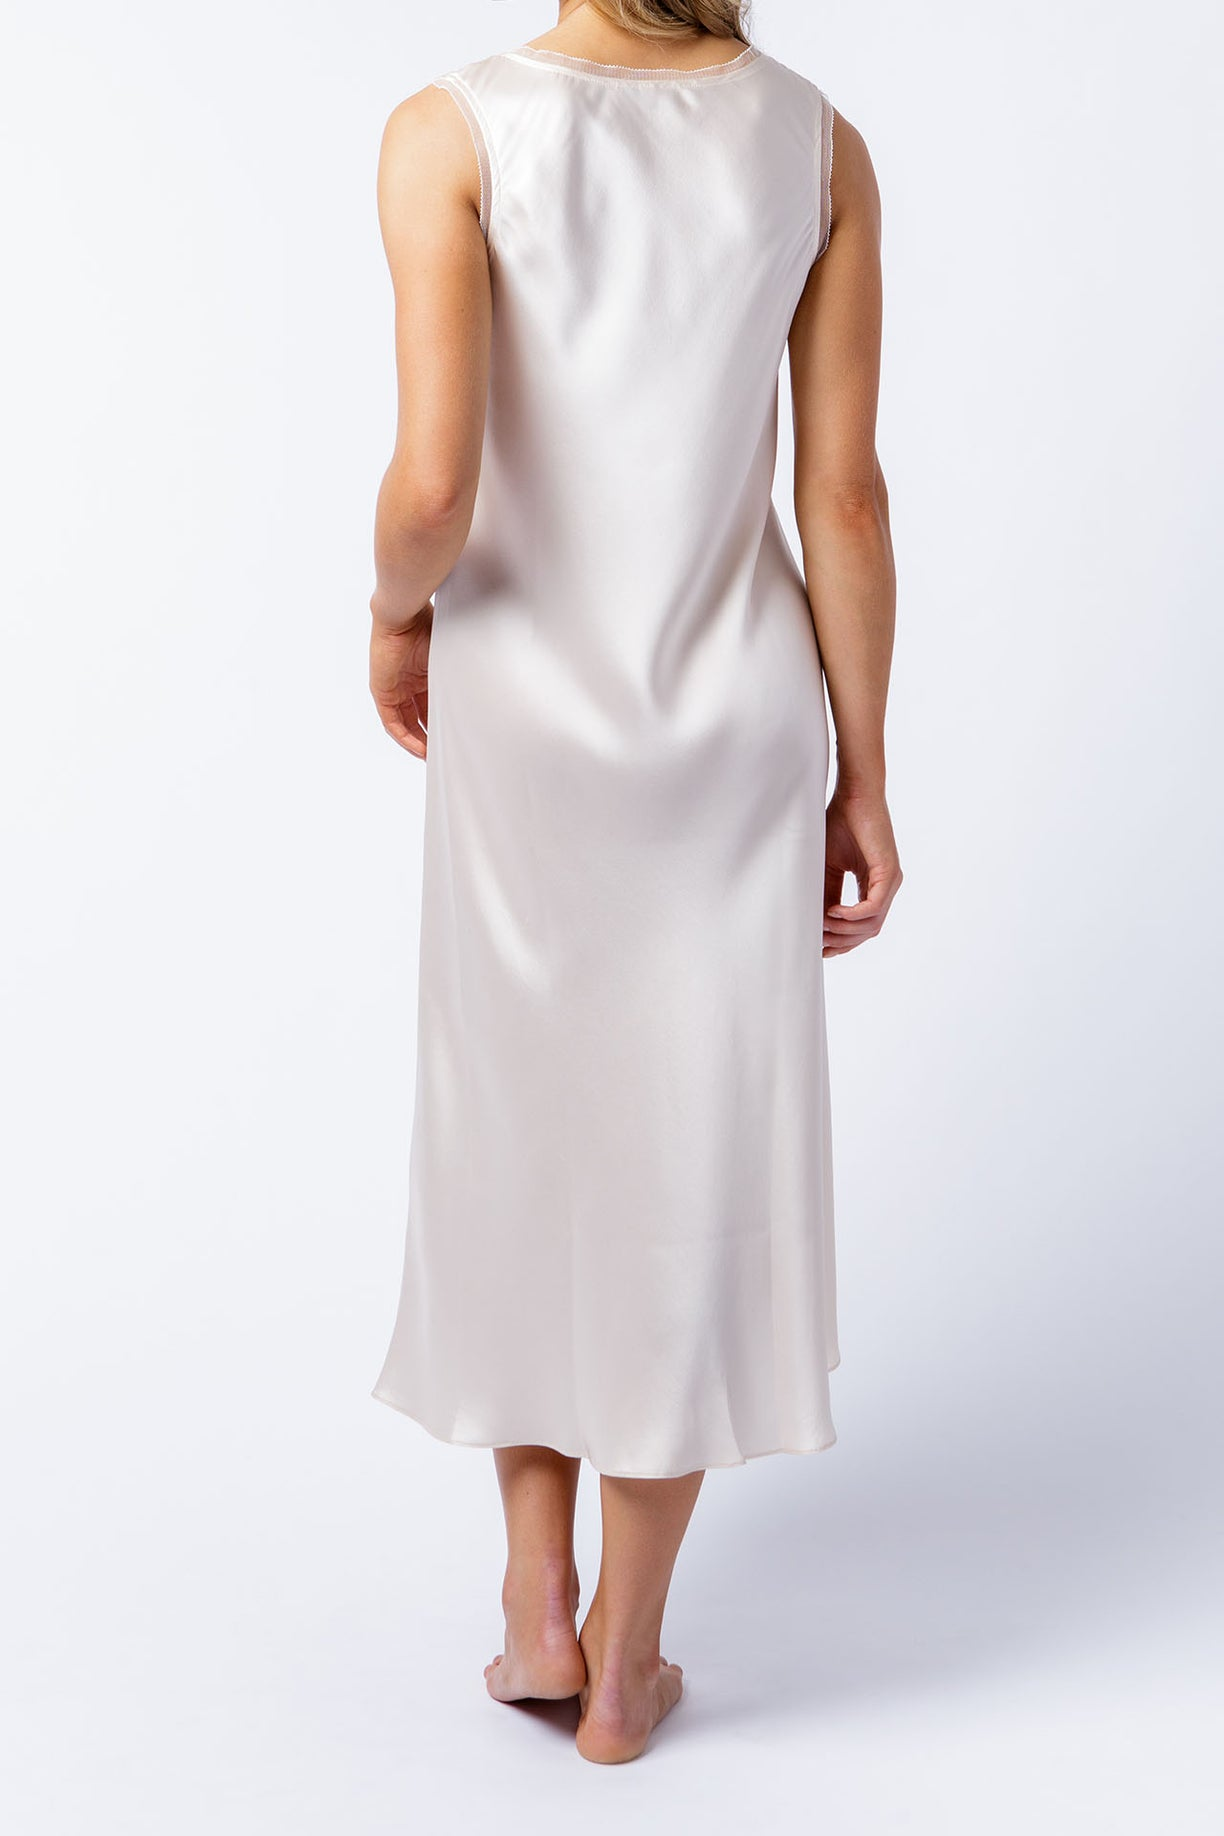 Cate dress in alabaster, back